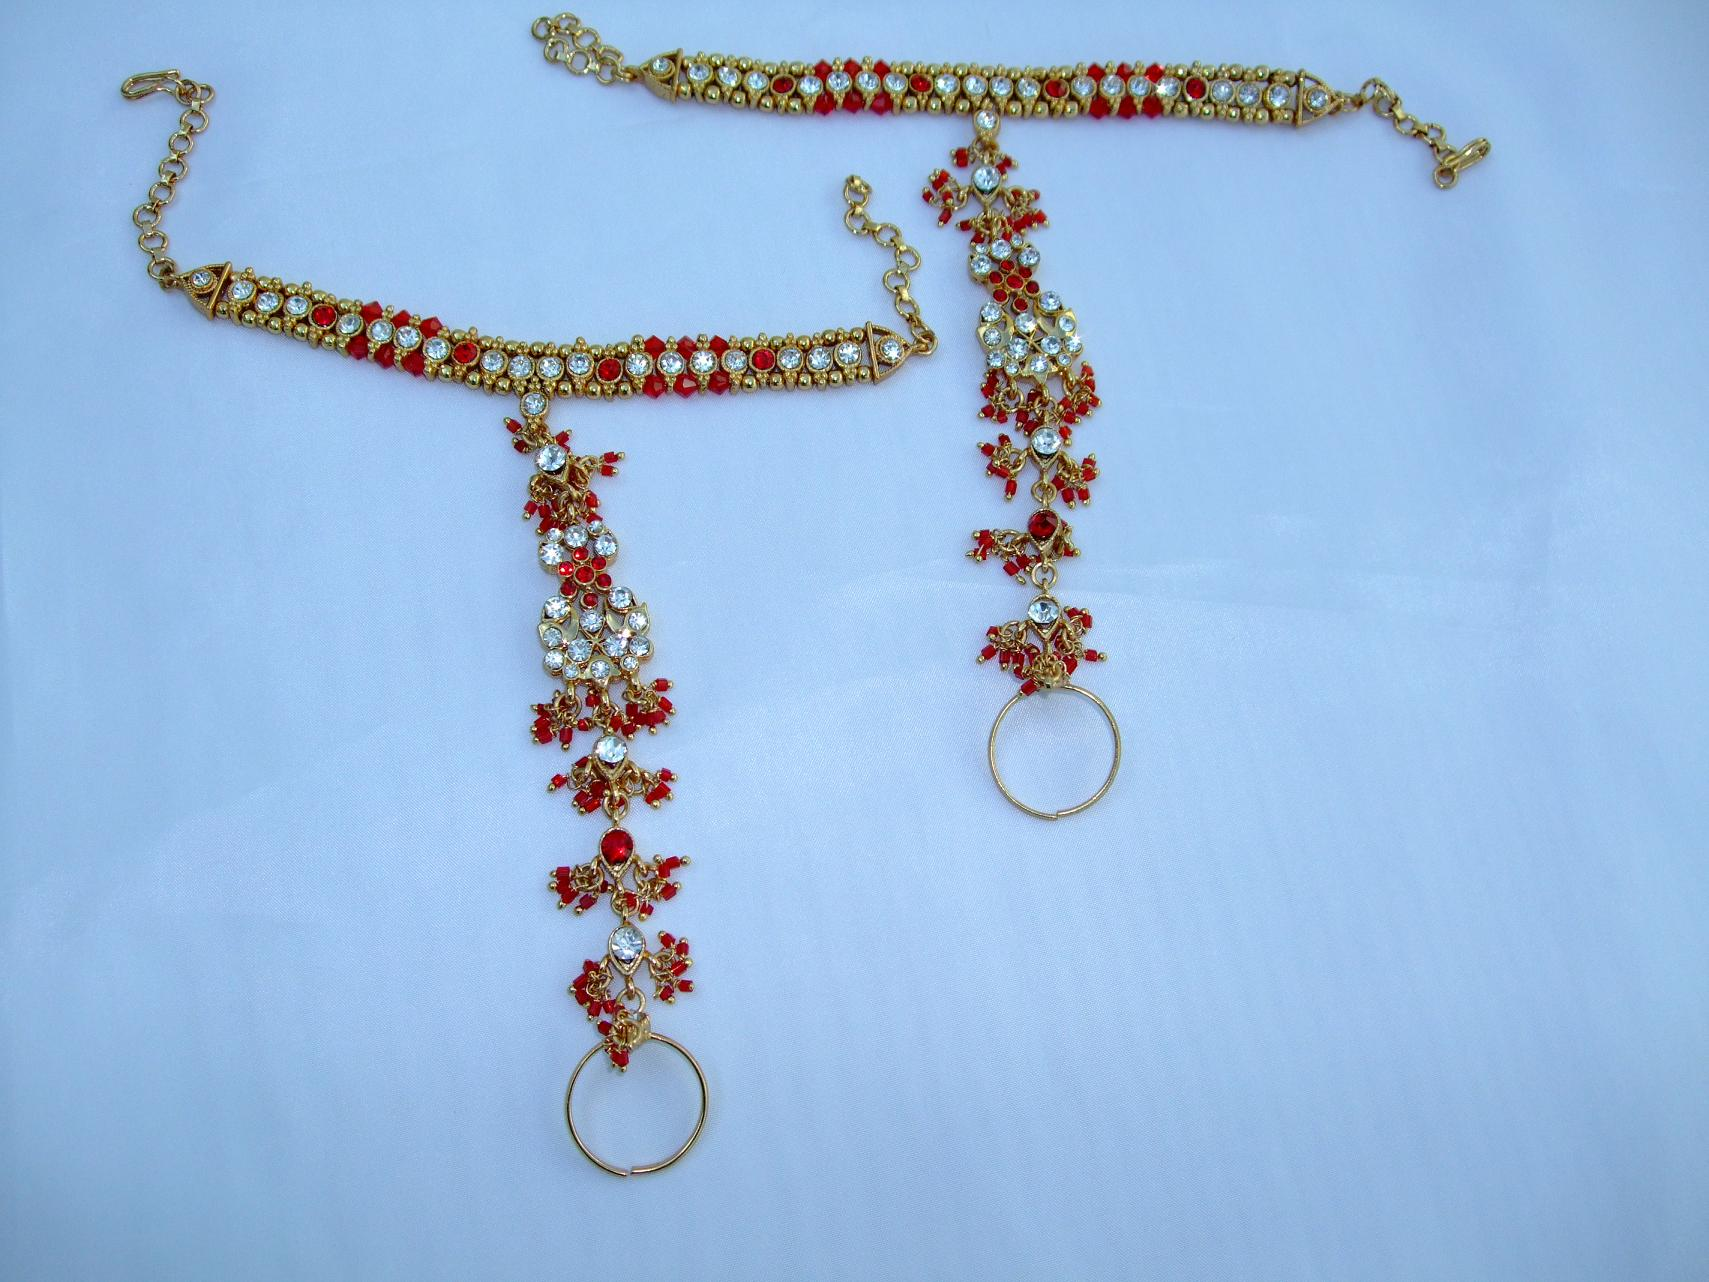 Indian Hand Jewelry Indian Hand Jewelry Five Piece